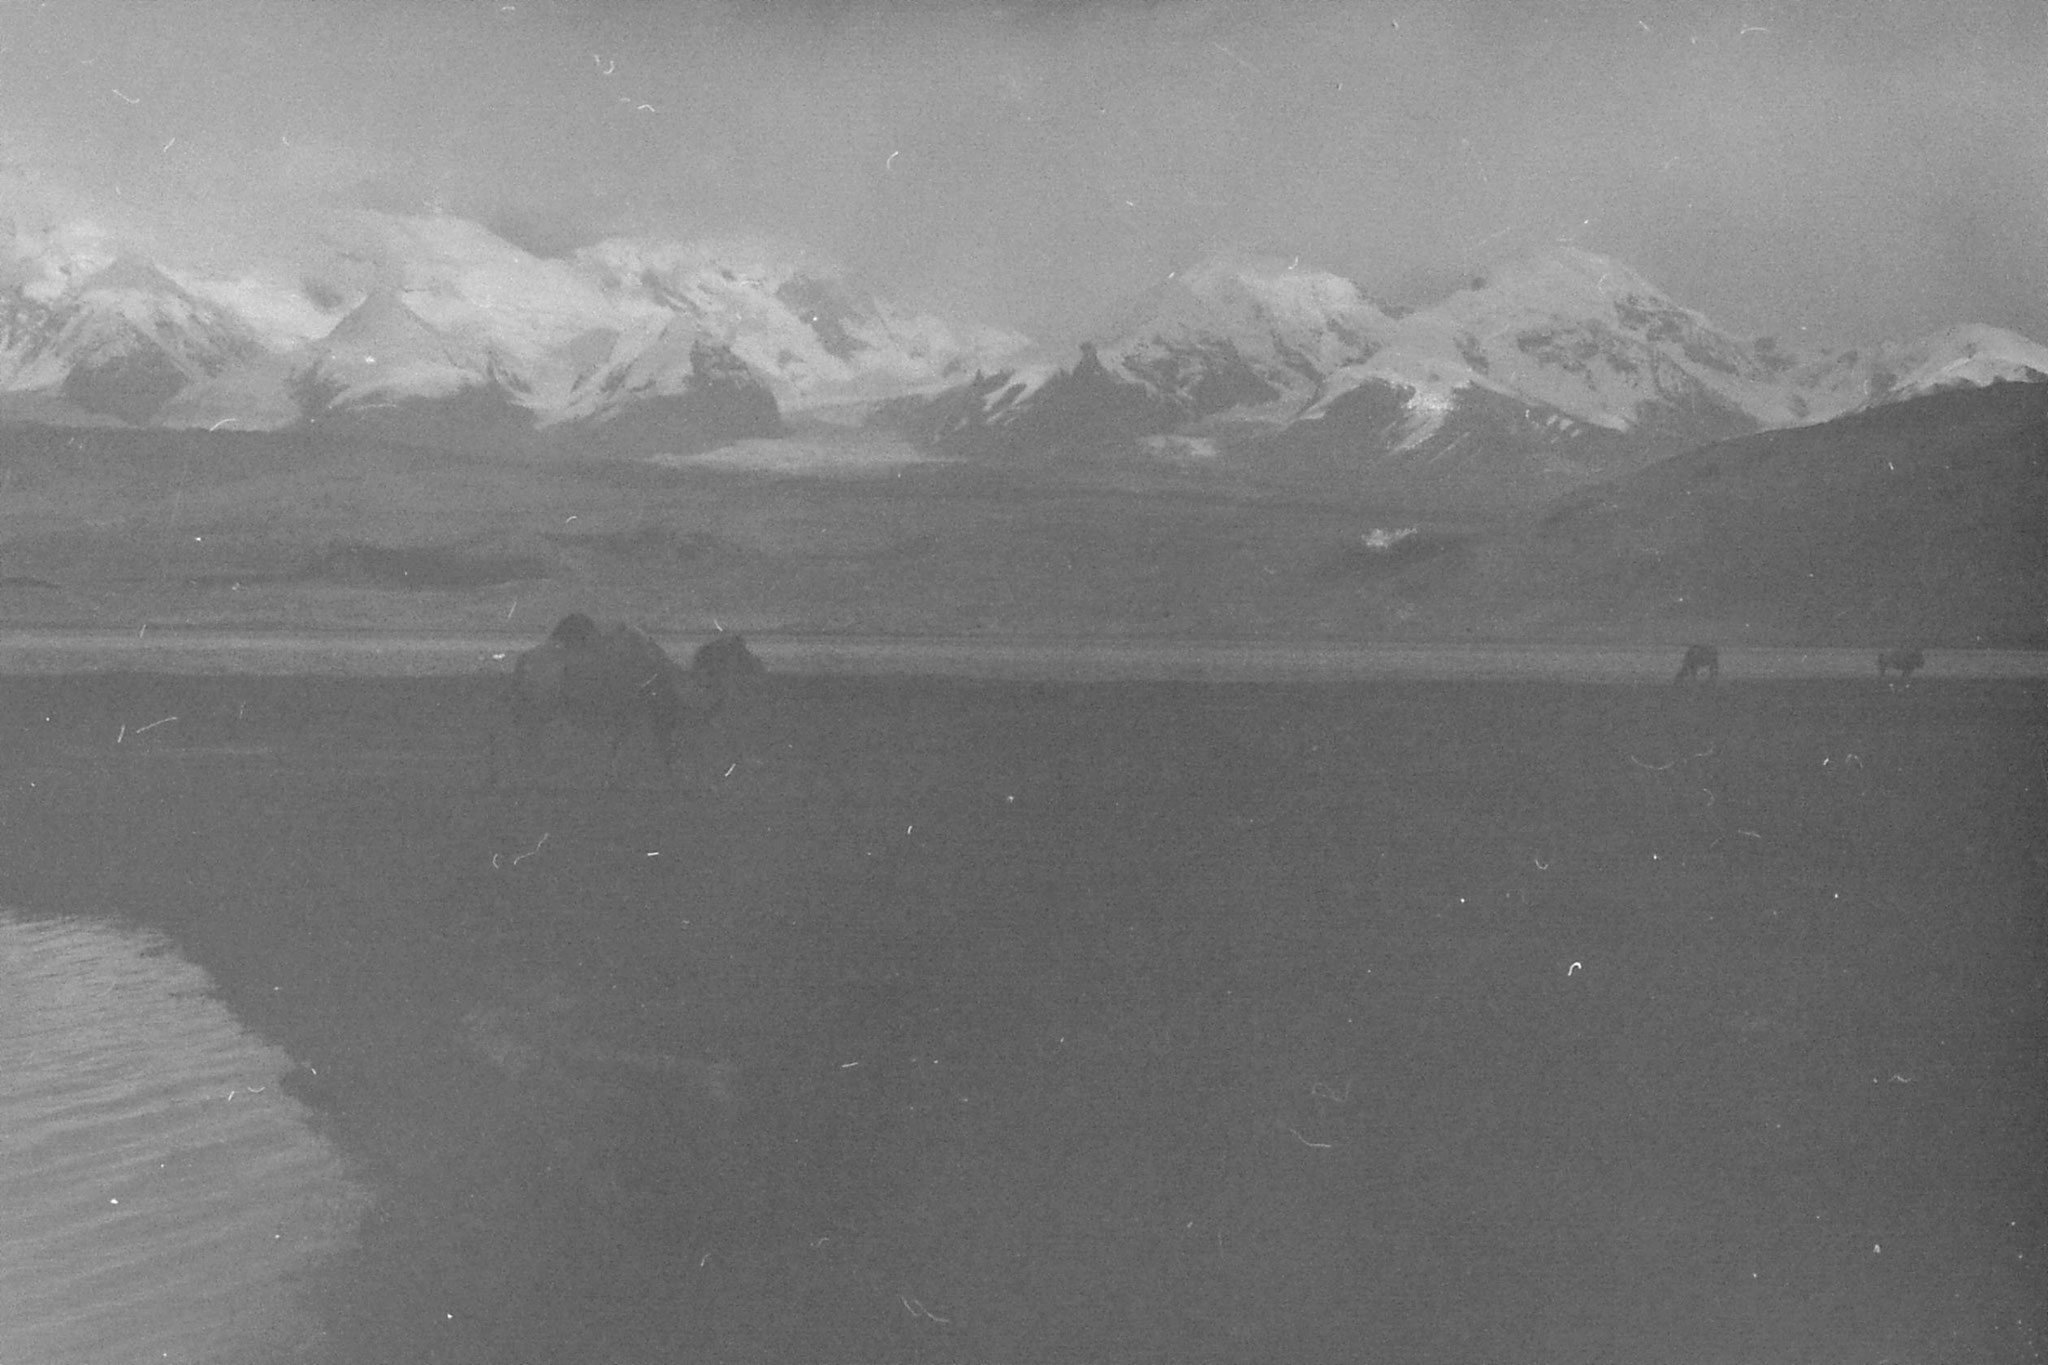 10/9/1989: 6: Lake Karakul